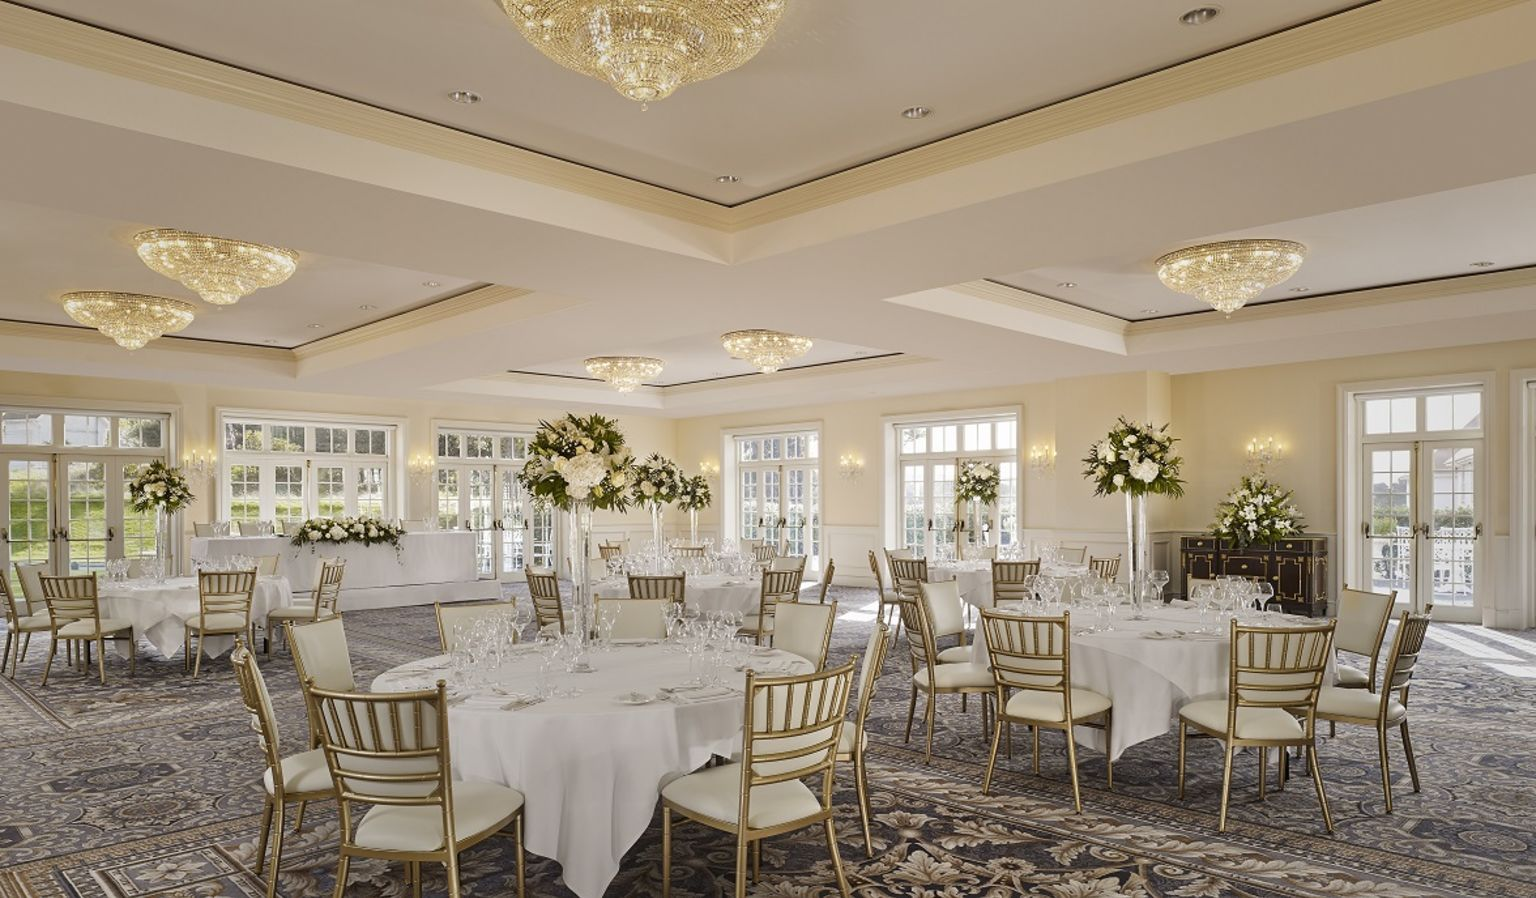 Caledonia Ballroom with Tables and Chairs